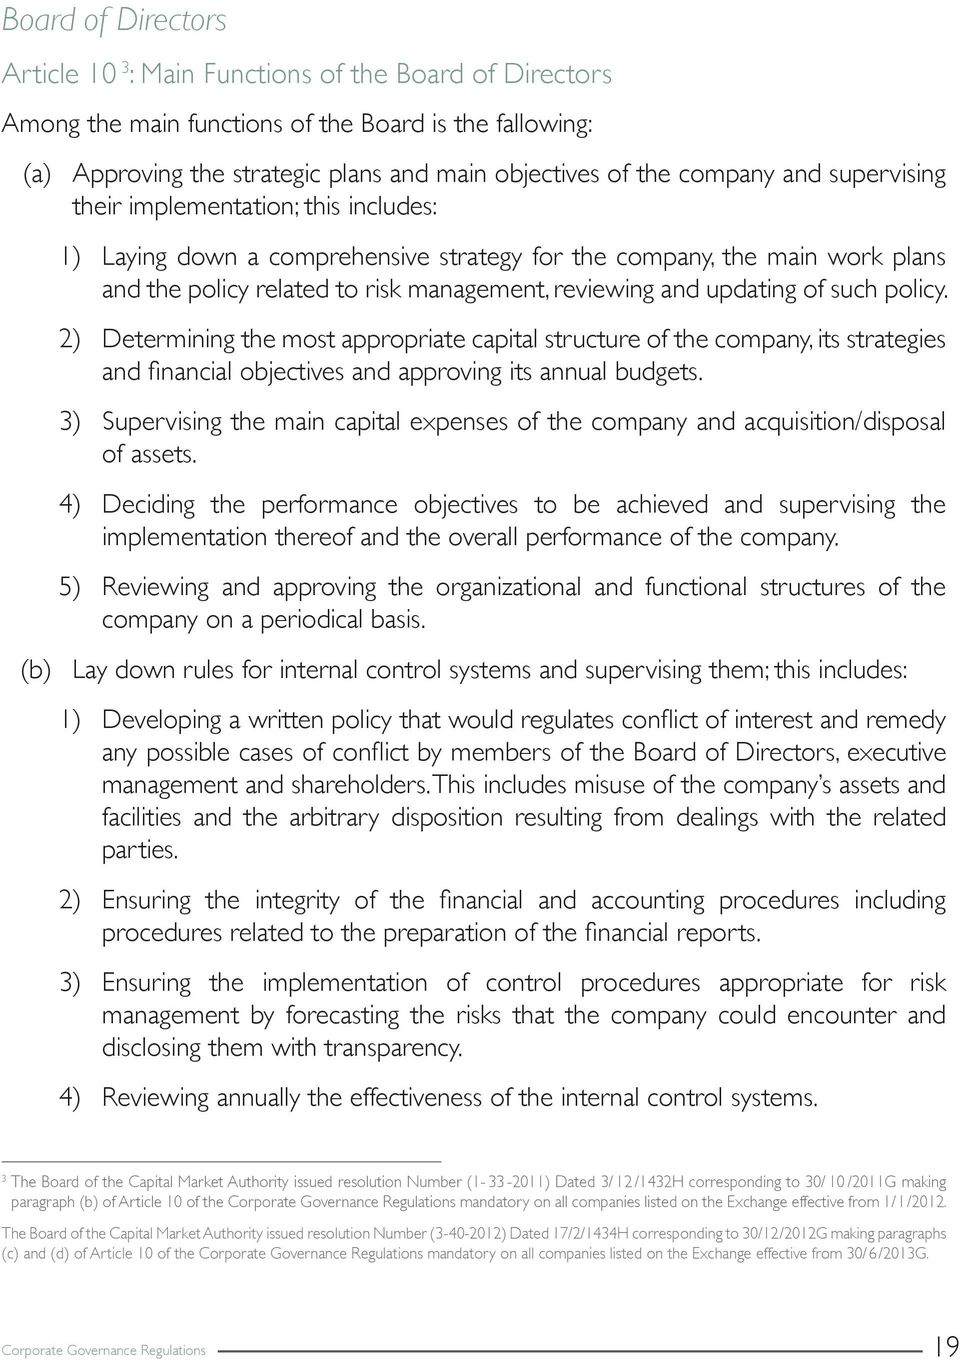 such policy. 2) Determining the most appropriate capital structure of the company, its strategies and financial objectives and approving its annual budgets.